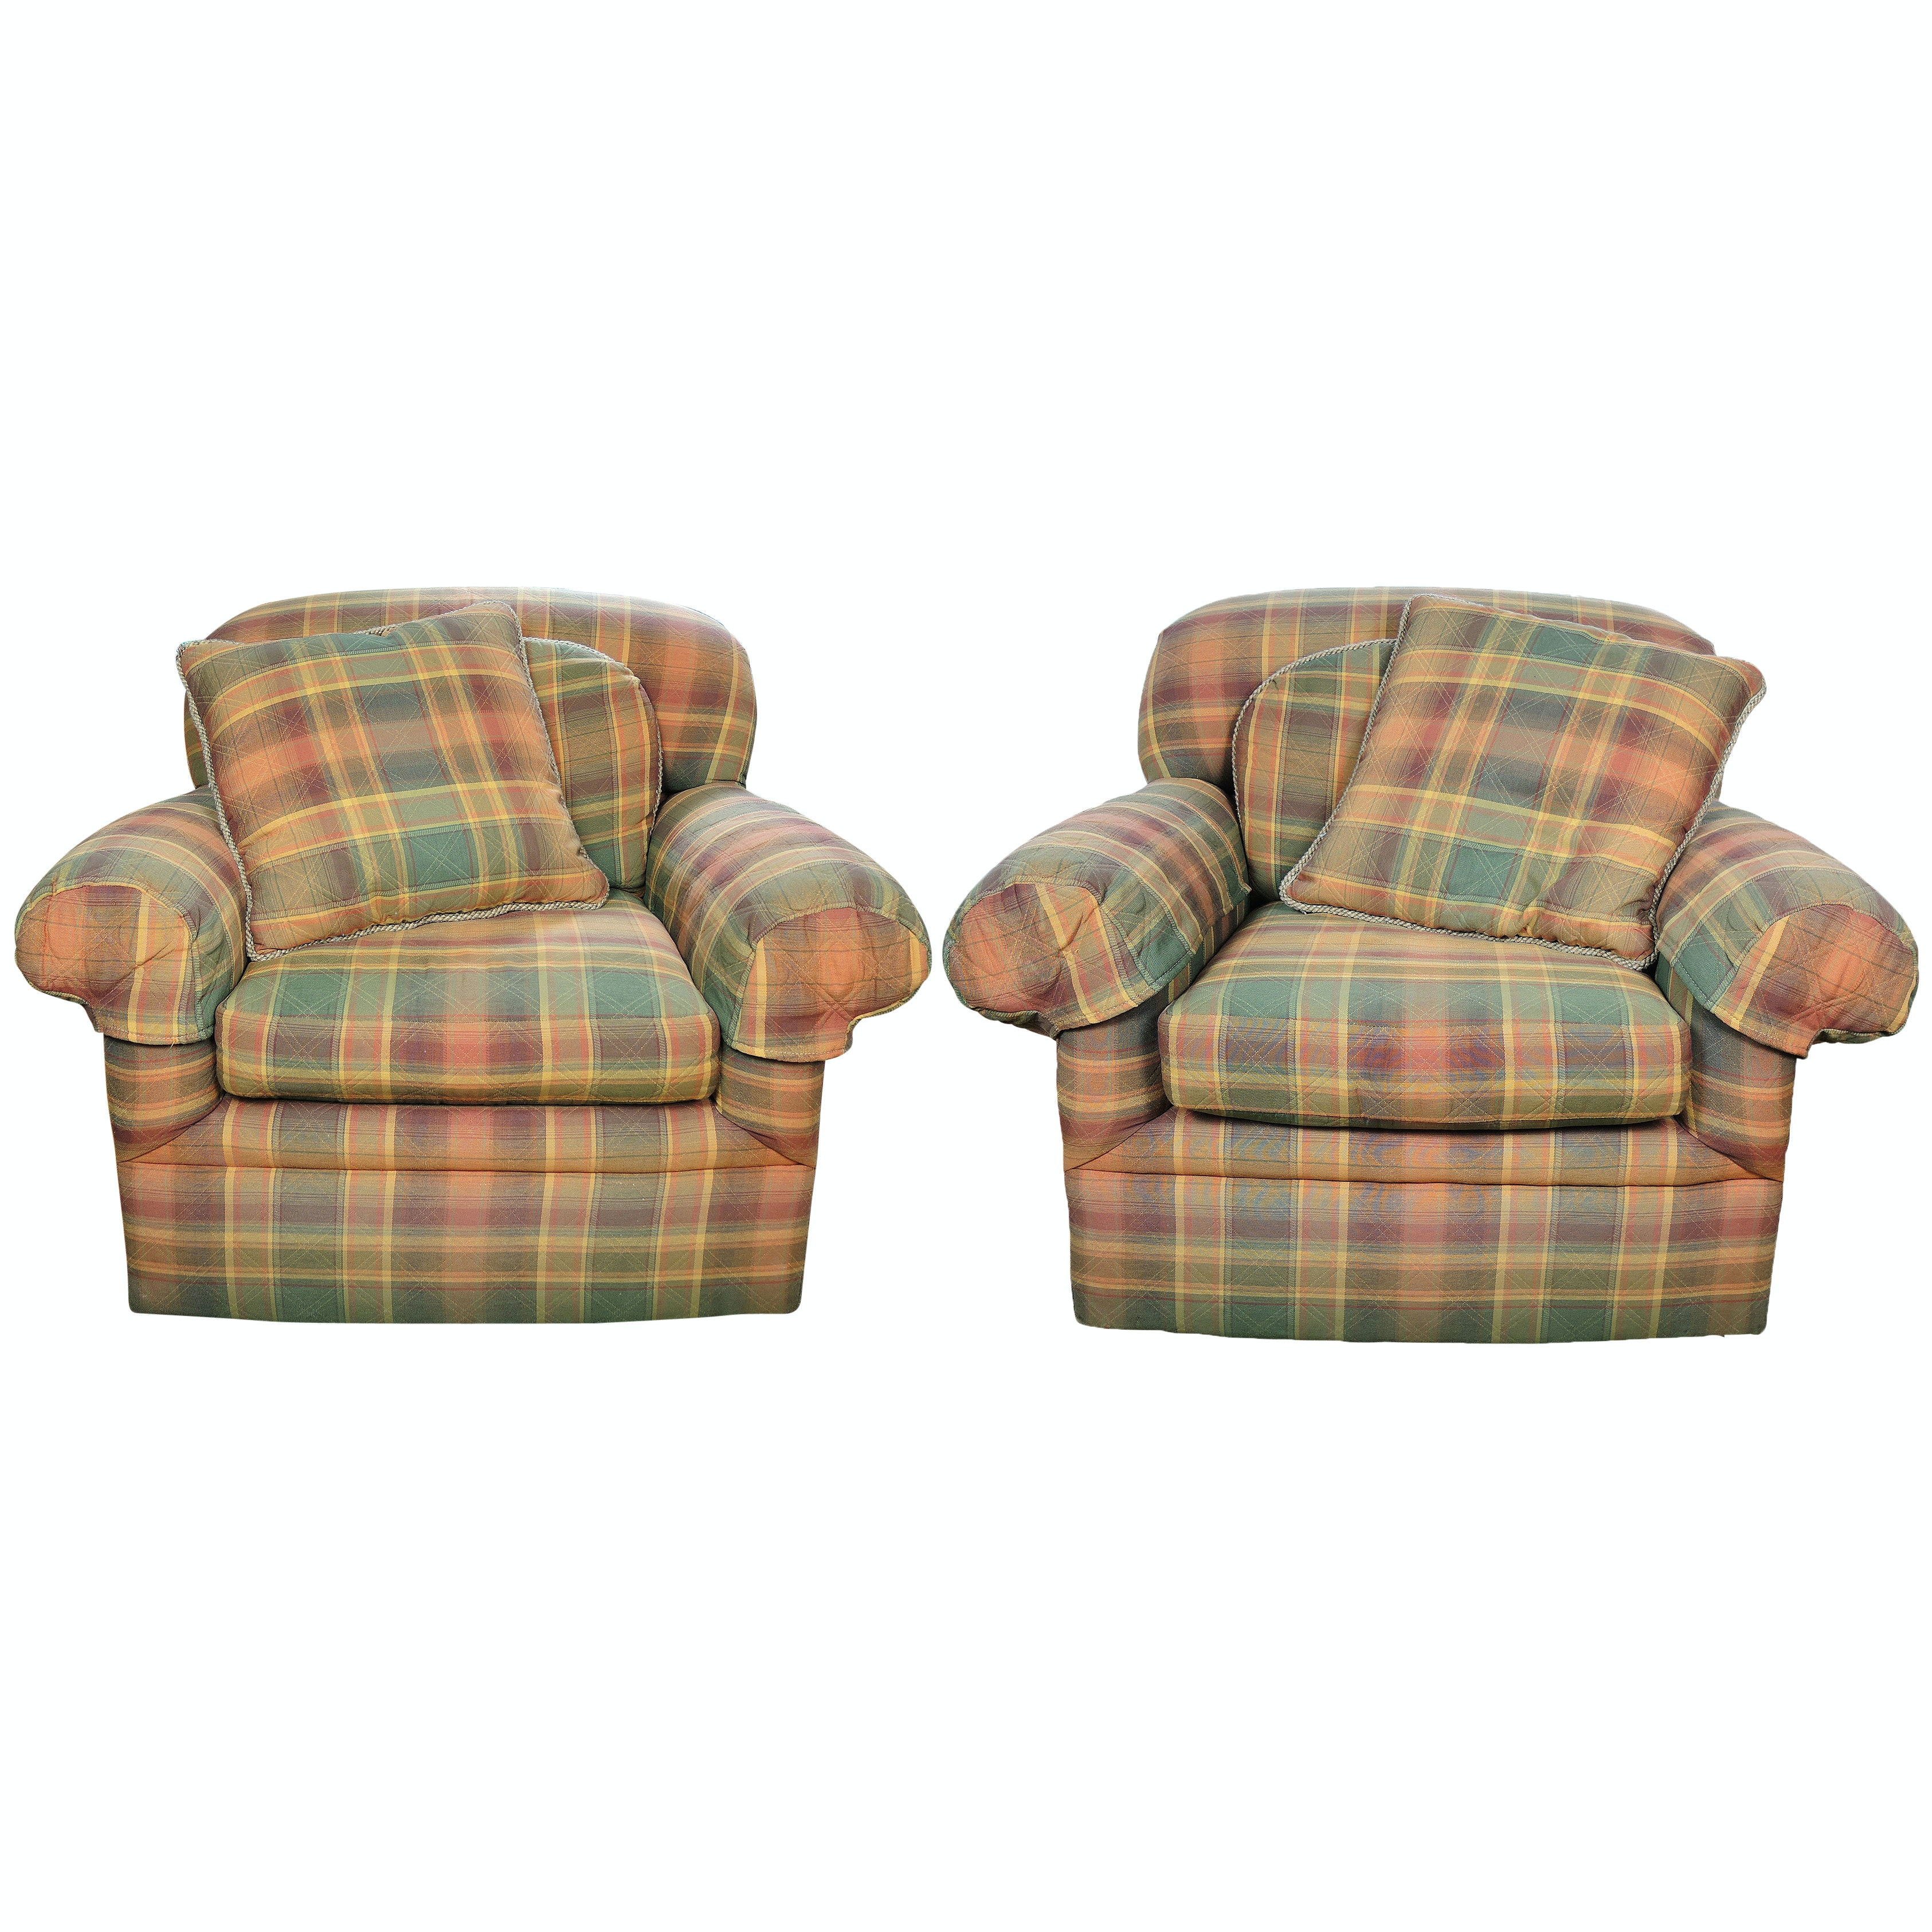 Plaid Upholstered Swivel Chairs By Century Furniture ...